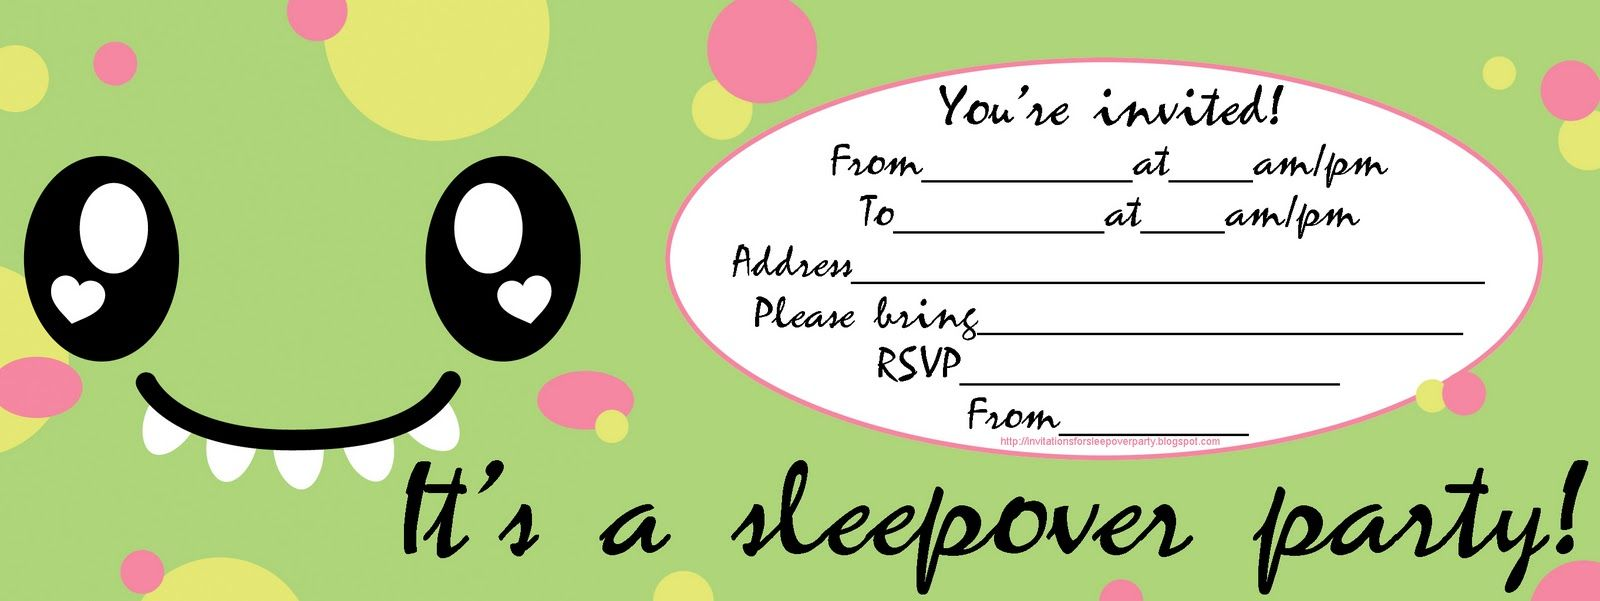 cute sleepover party invite dino jpg  1600 u00d7601